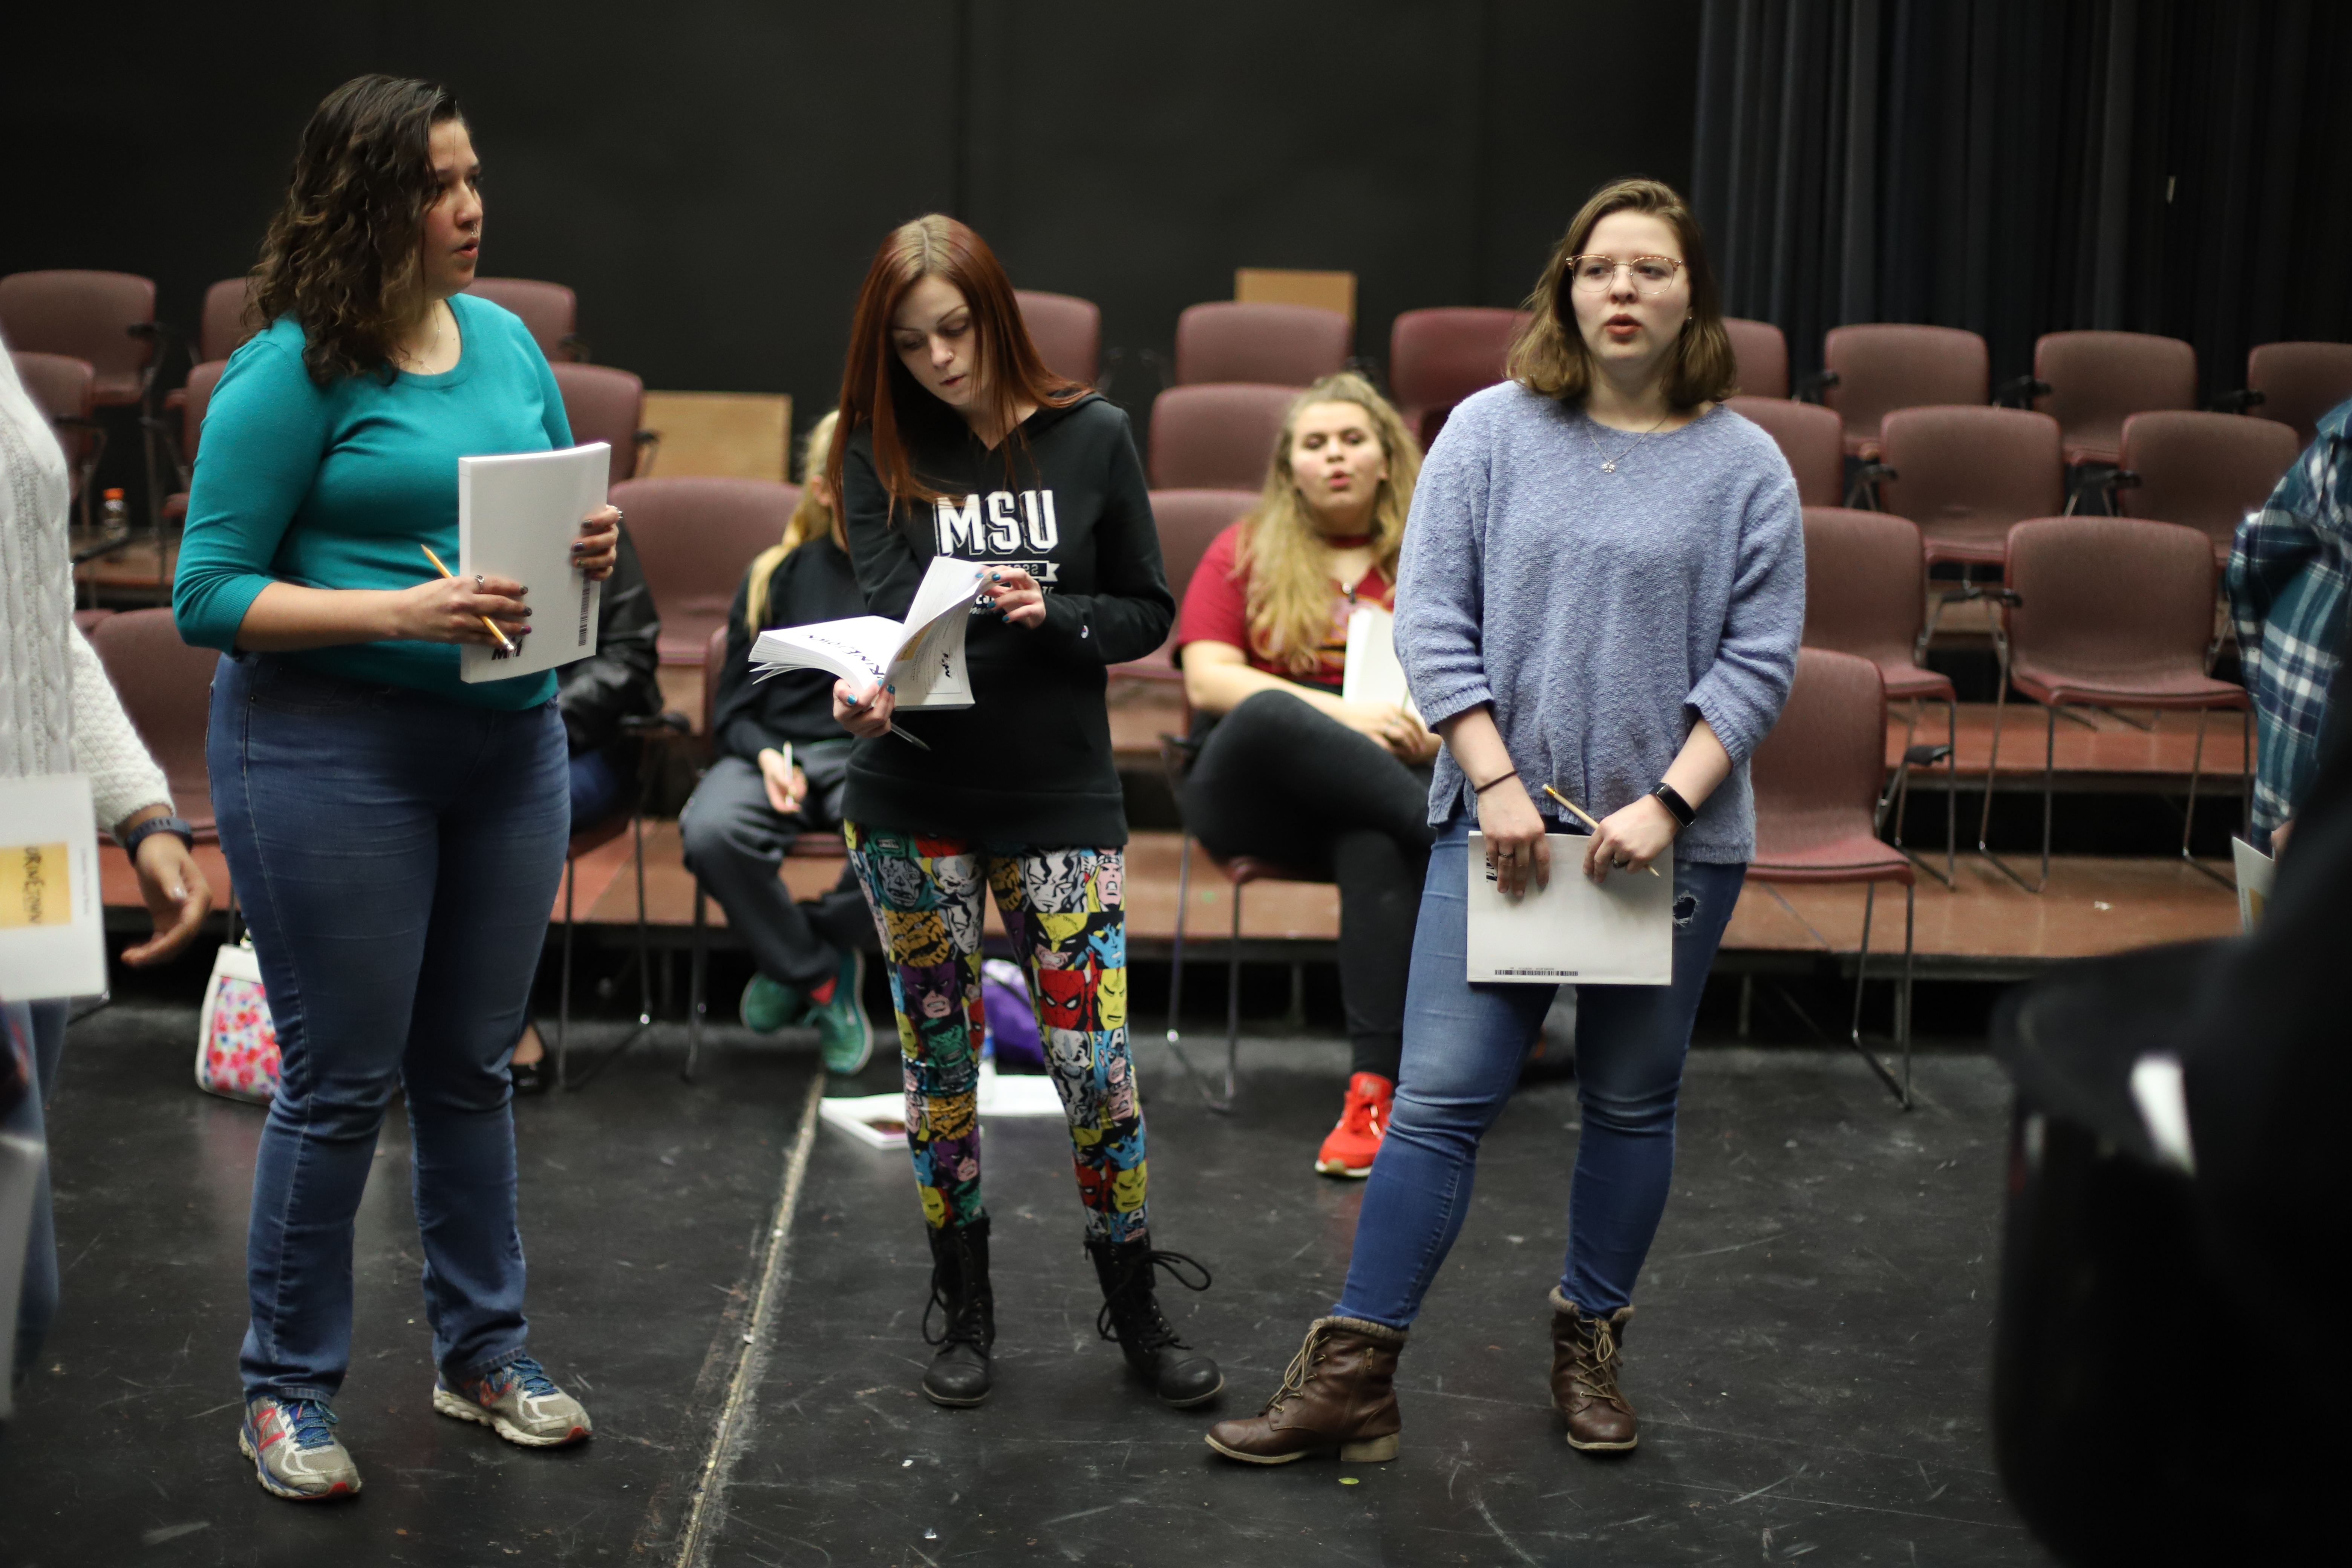 Urinetown cast met for first rehearsal